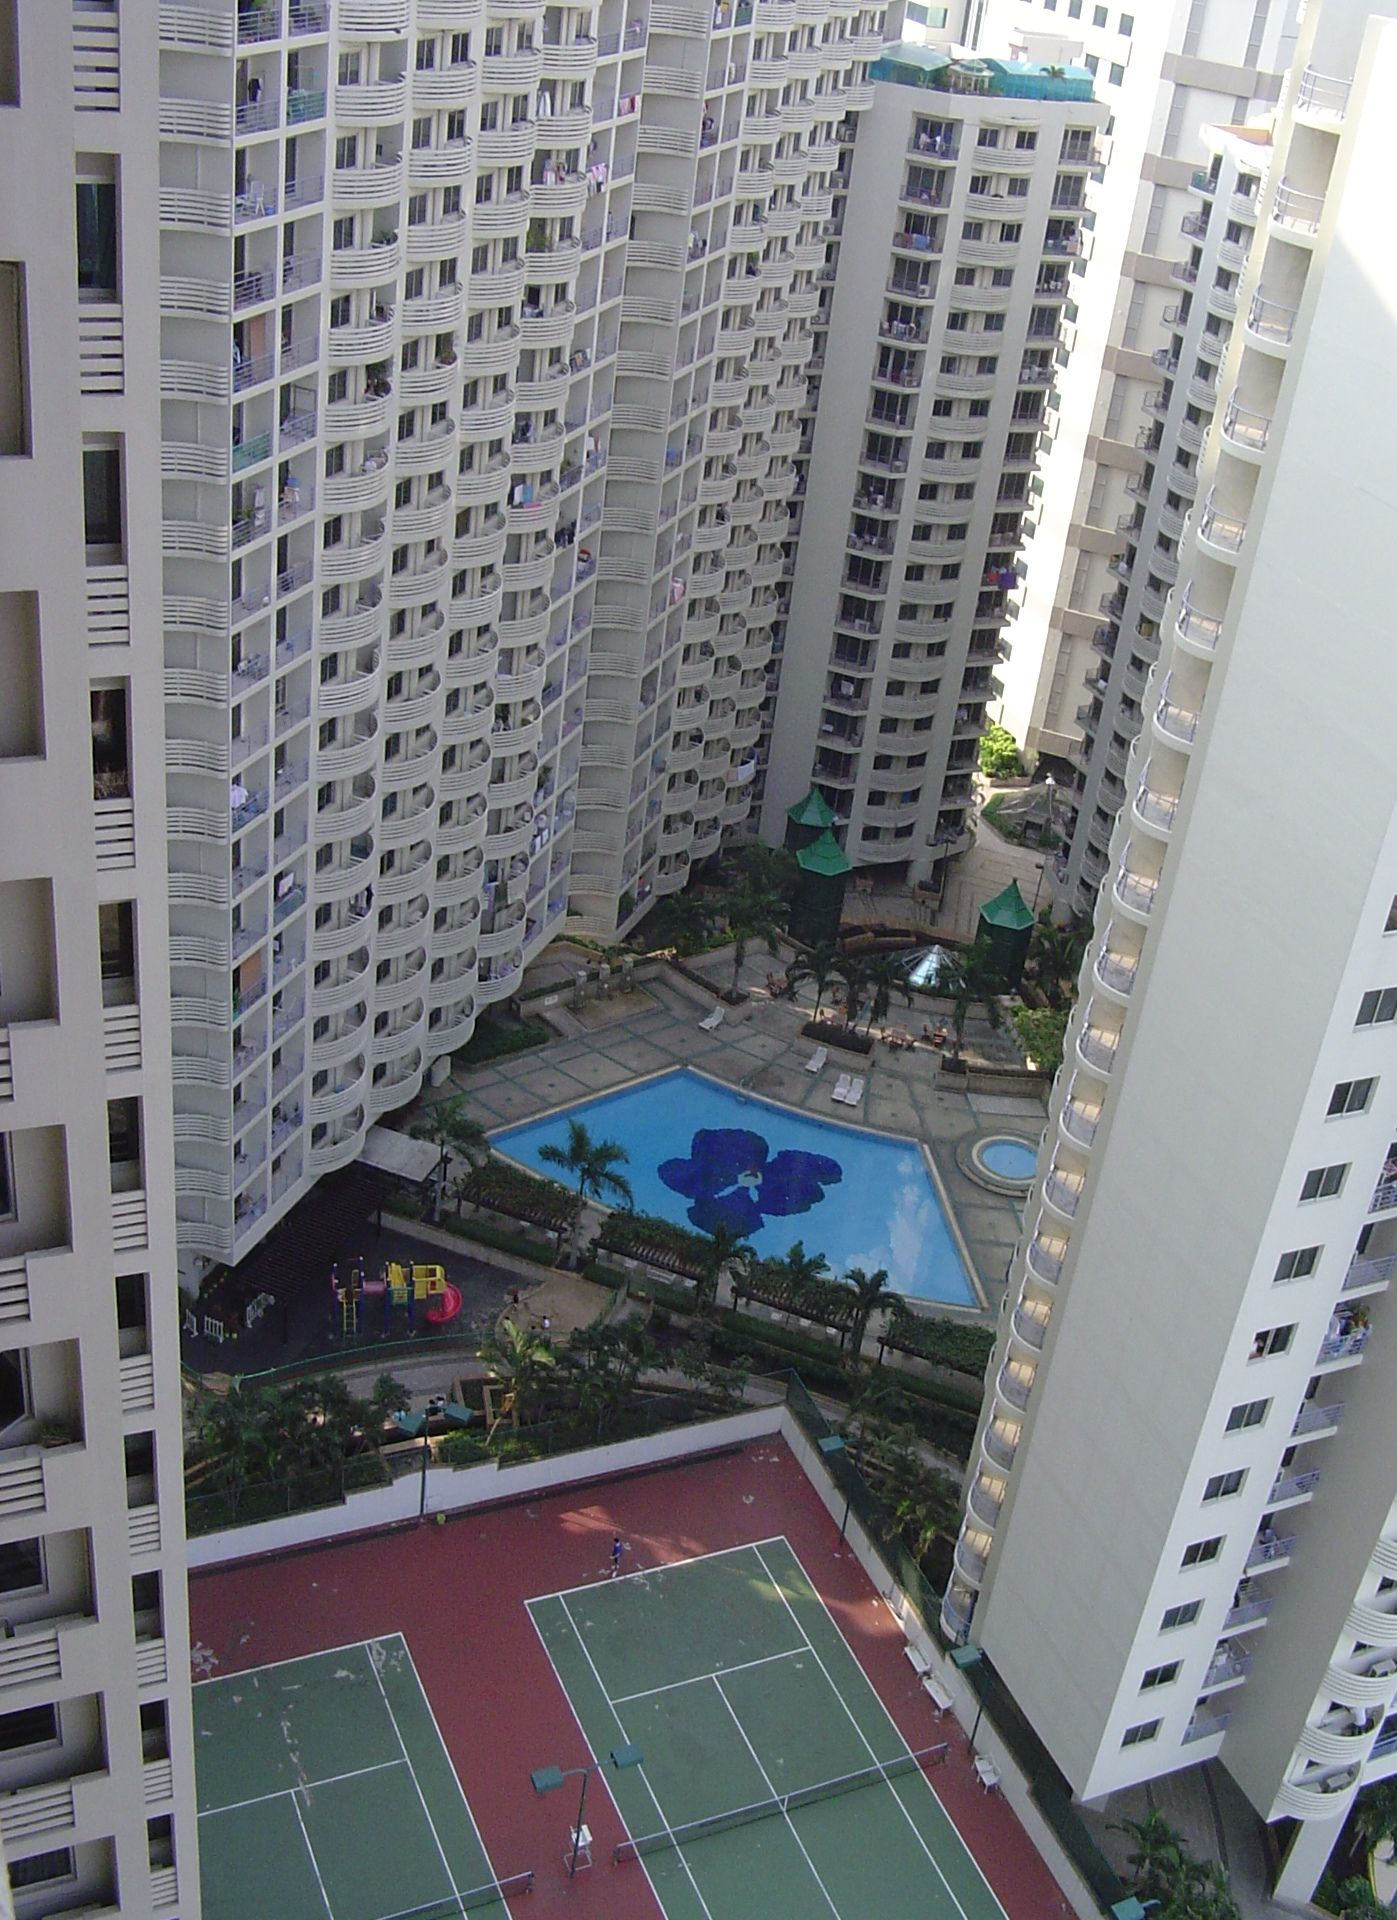 Tennis courts at SV City in Bangkok view from my apartment at the